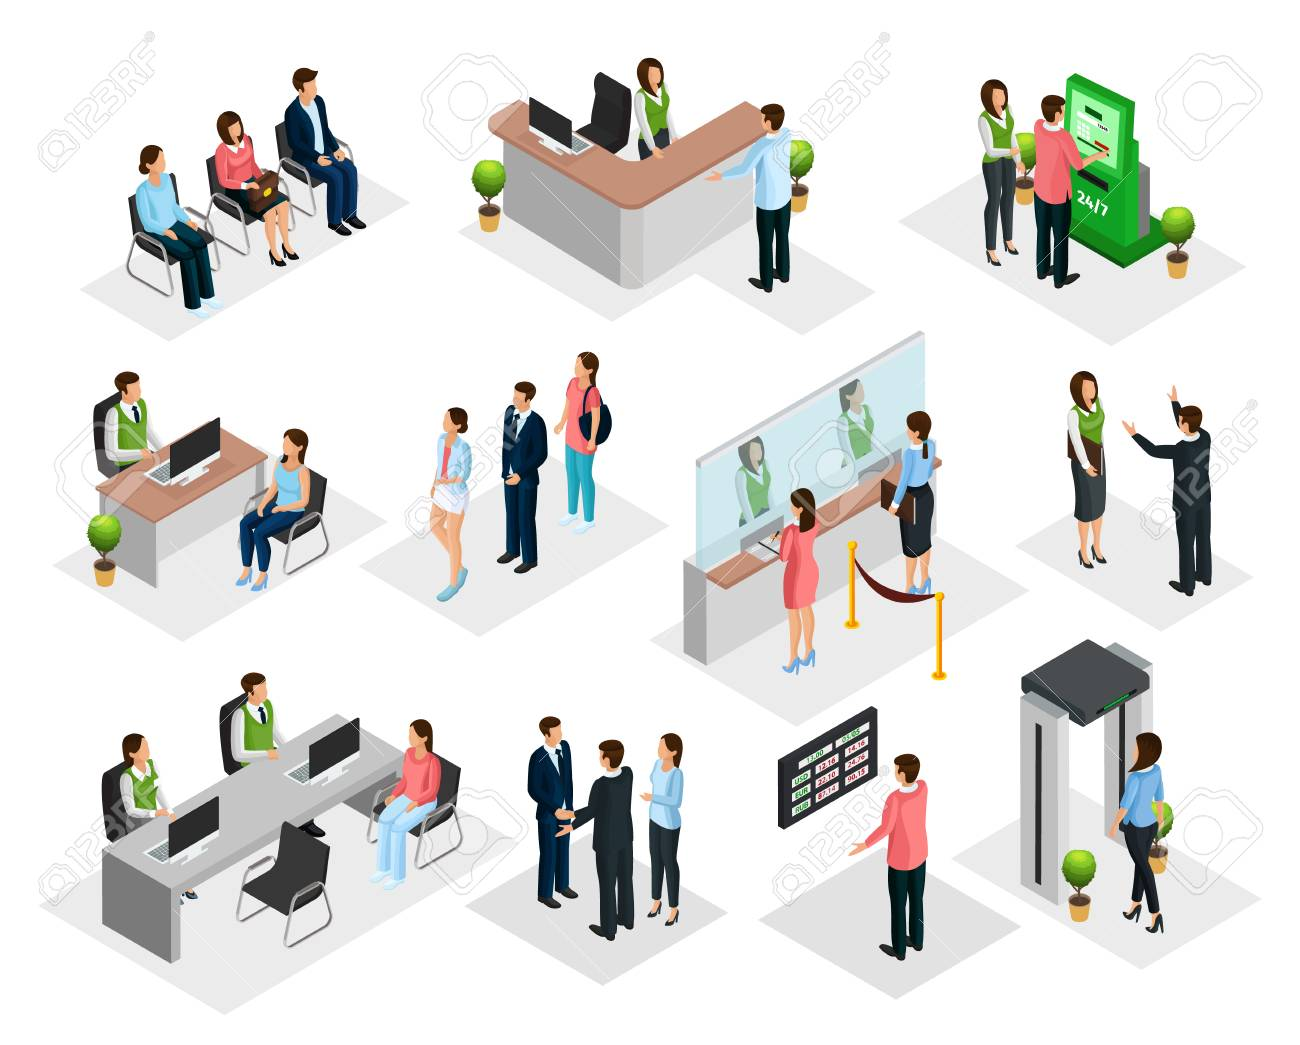 Isometric People In Bank Collection - 86422863